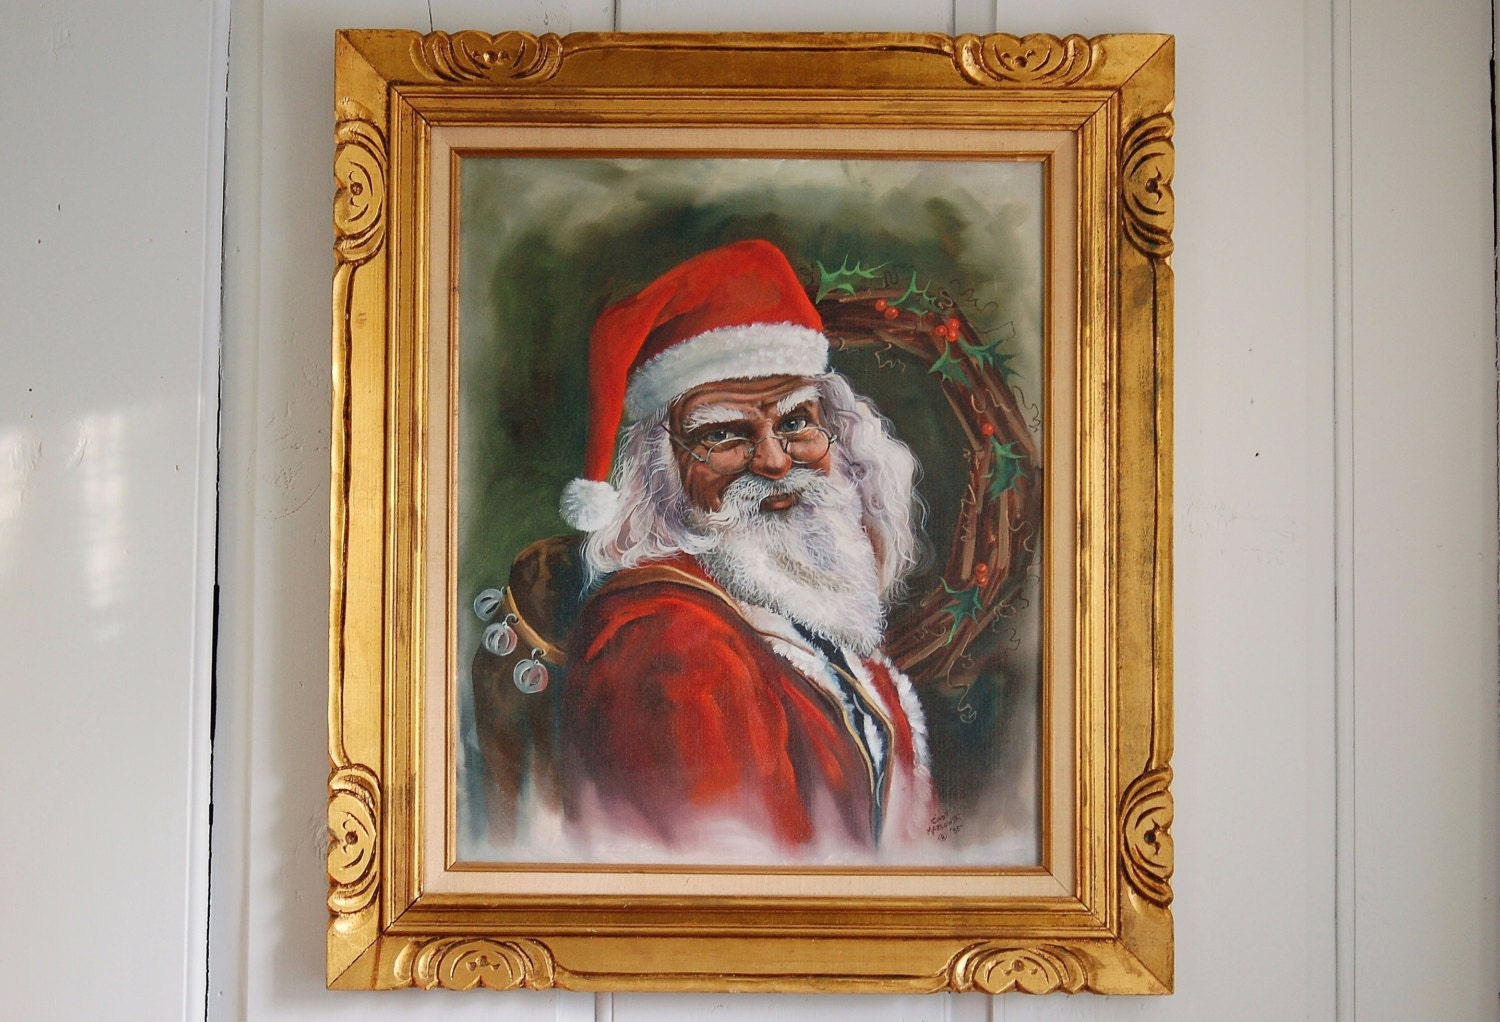 Framed santa claus painting large 32 x 28 signed father description this is a masterful acrylic painting of santa claus framed jeuxipadfo Choice Image